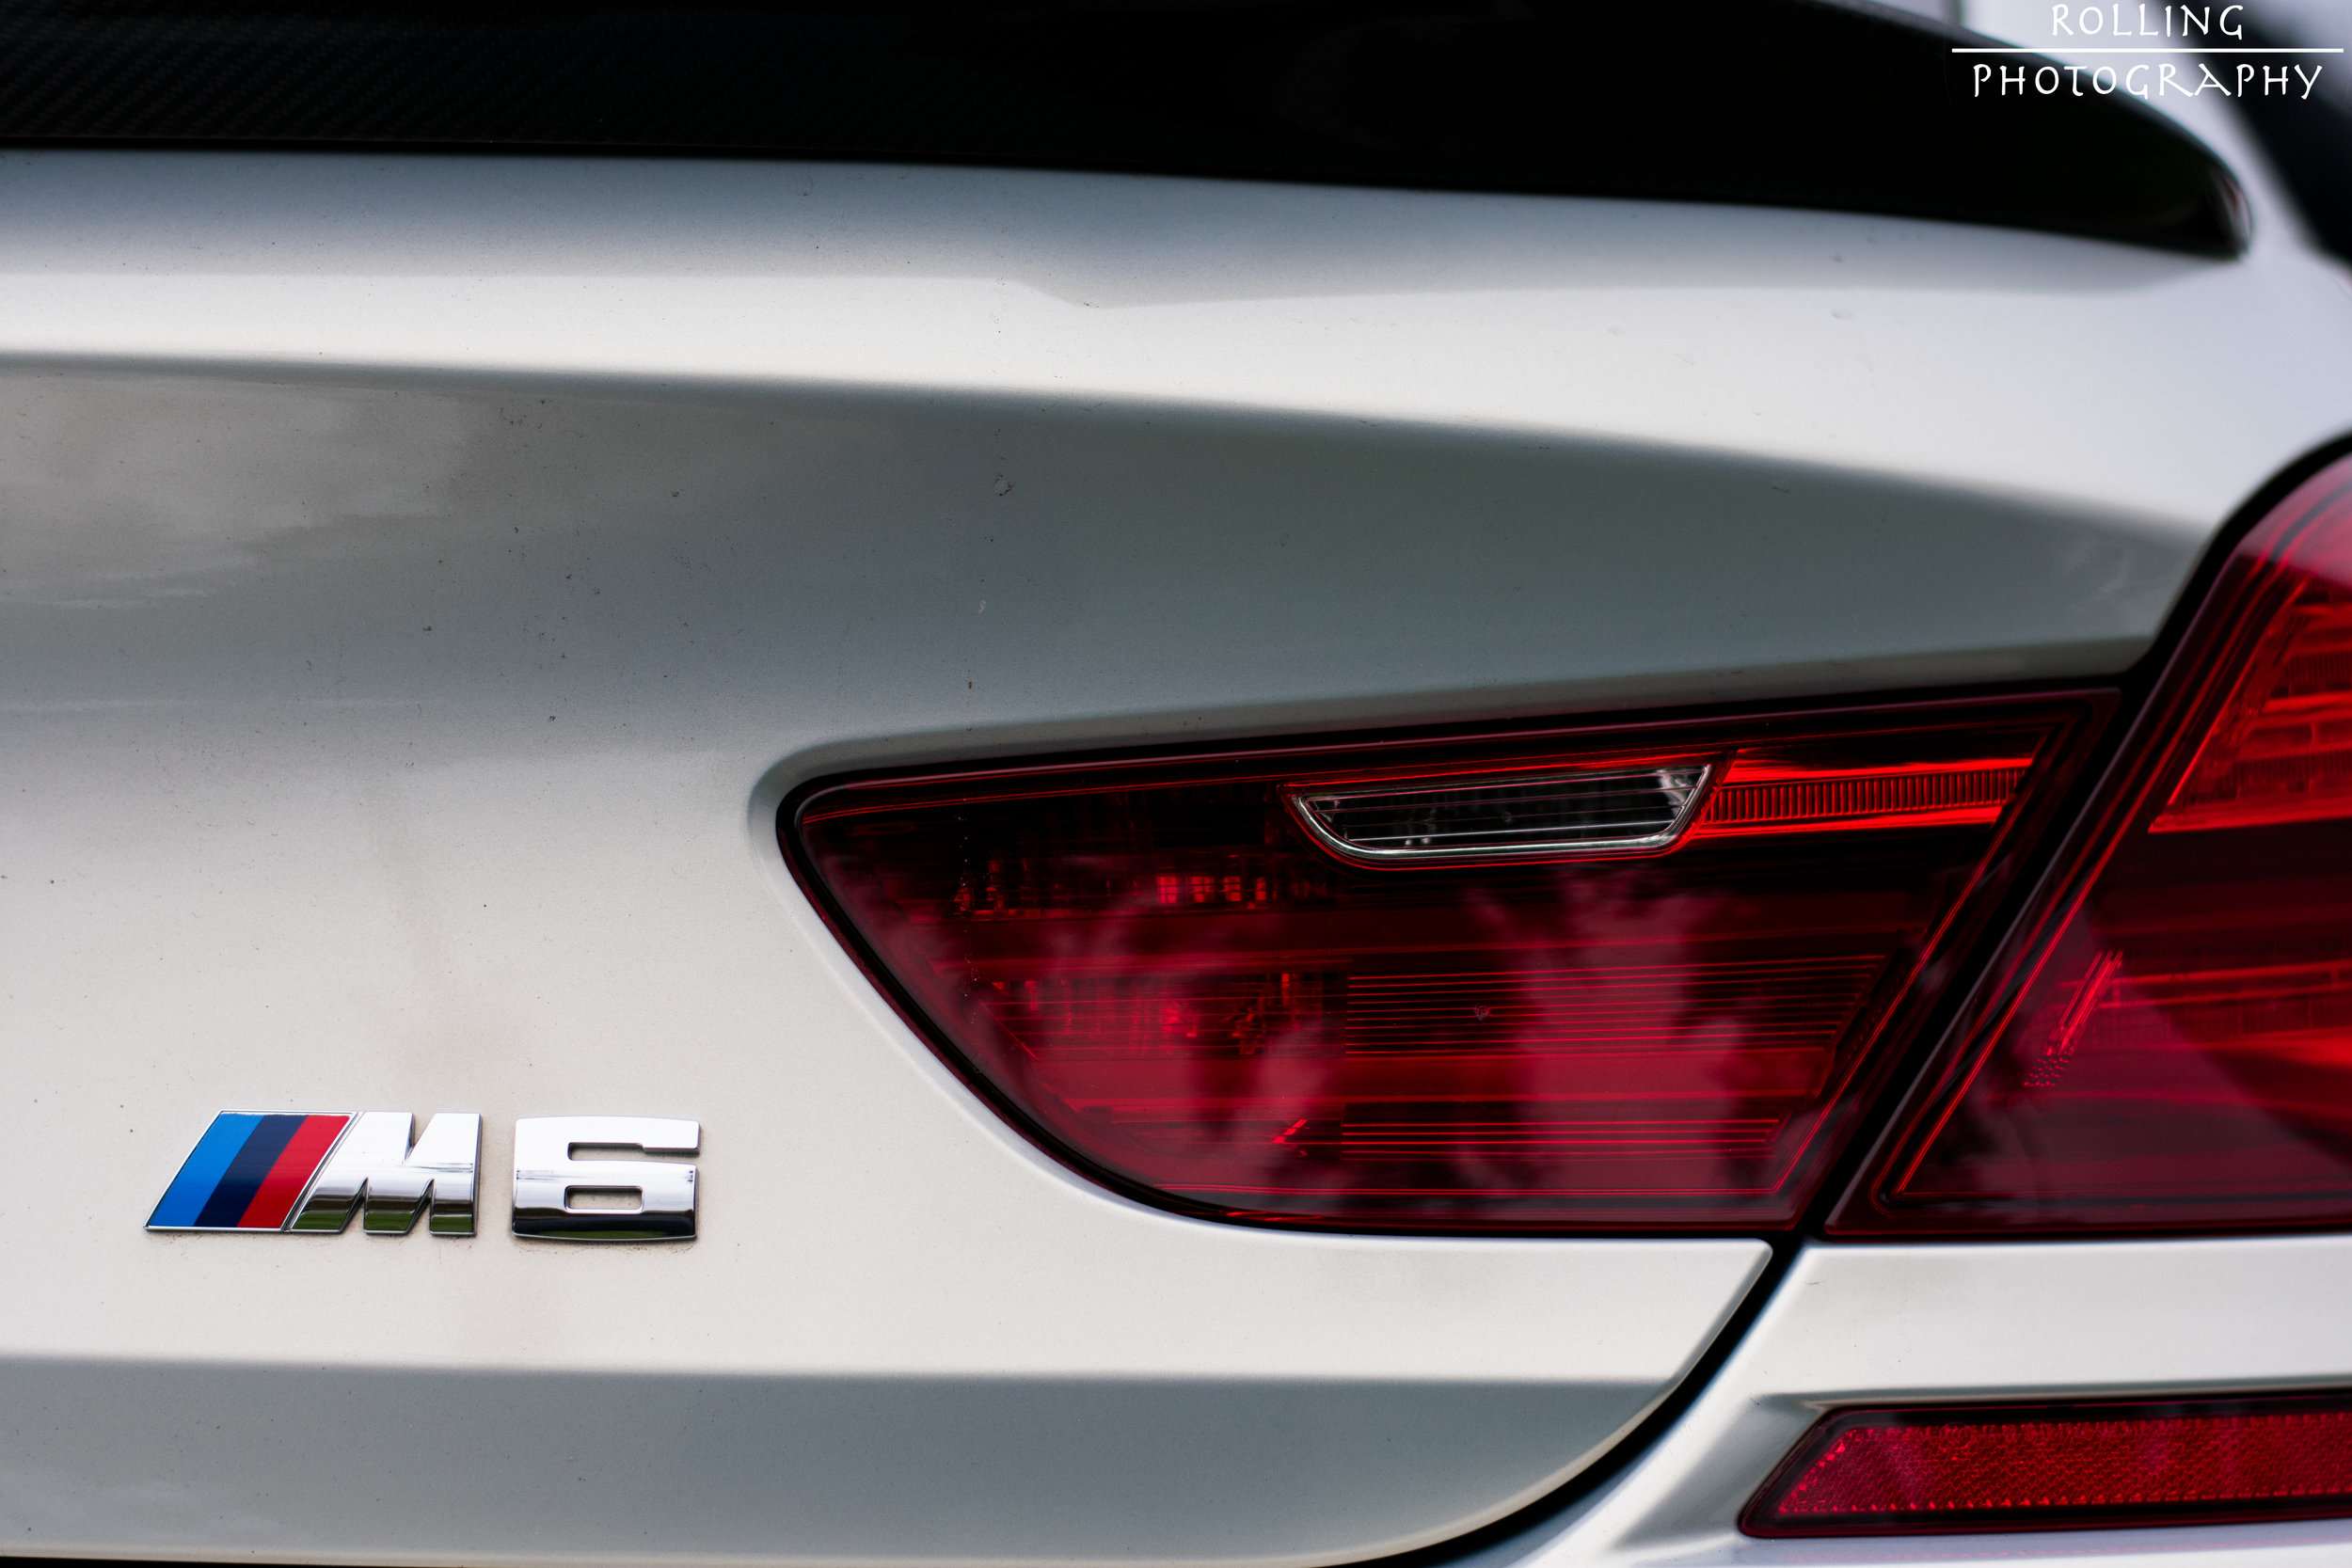 BMW M6 Rear Insignia.jpg